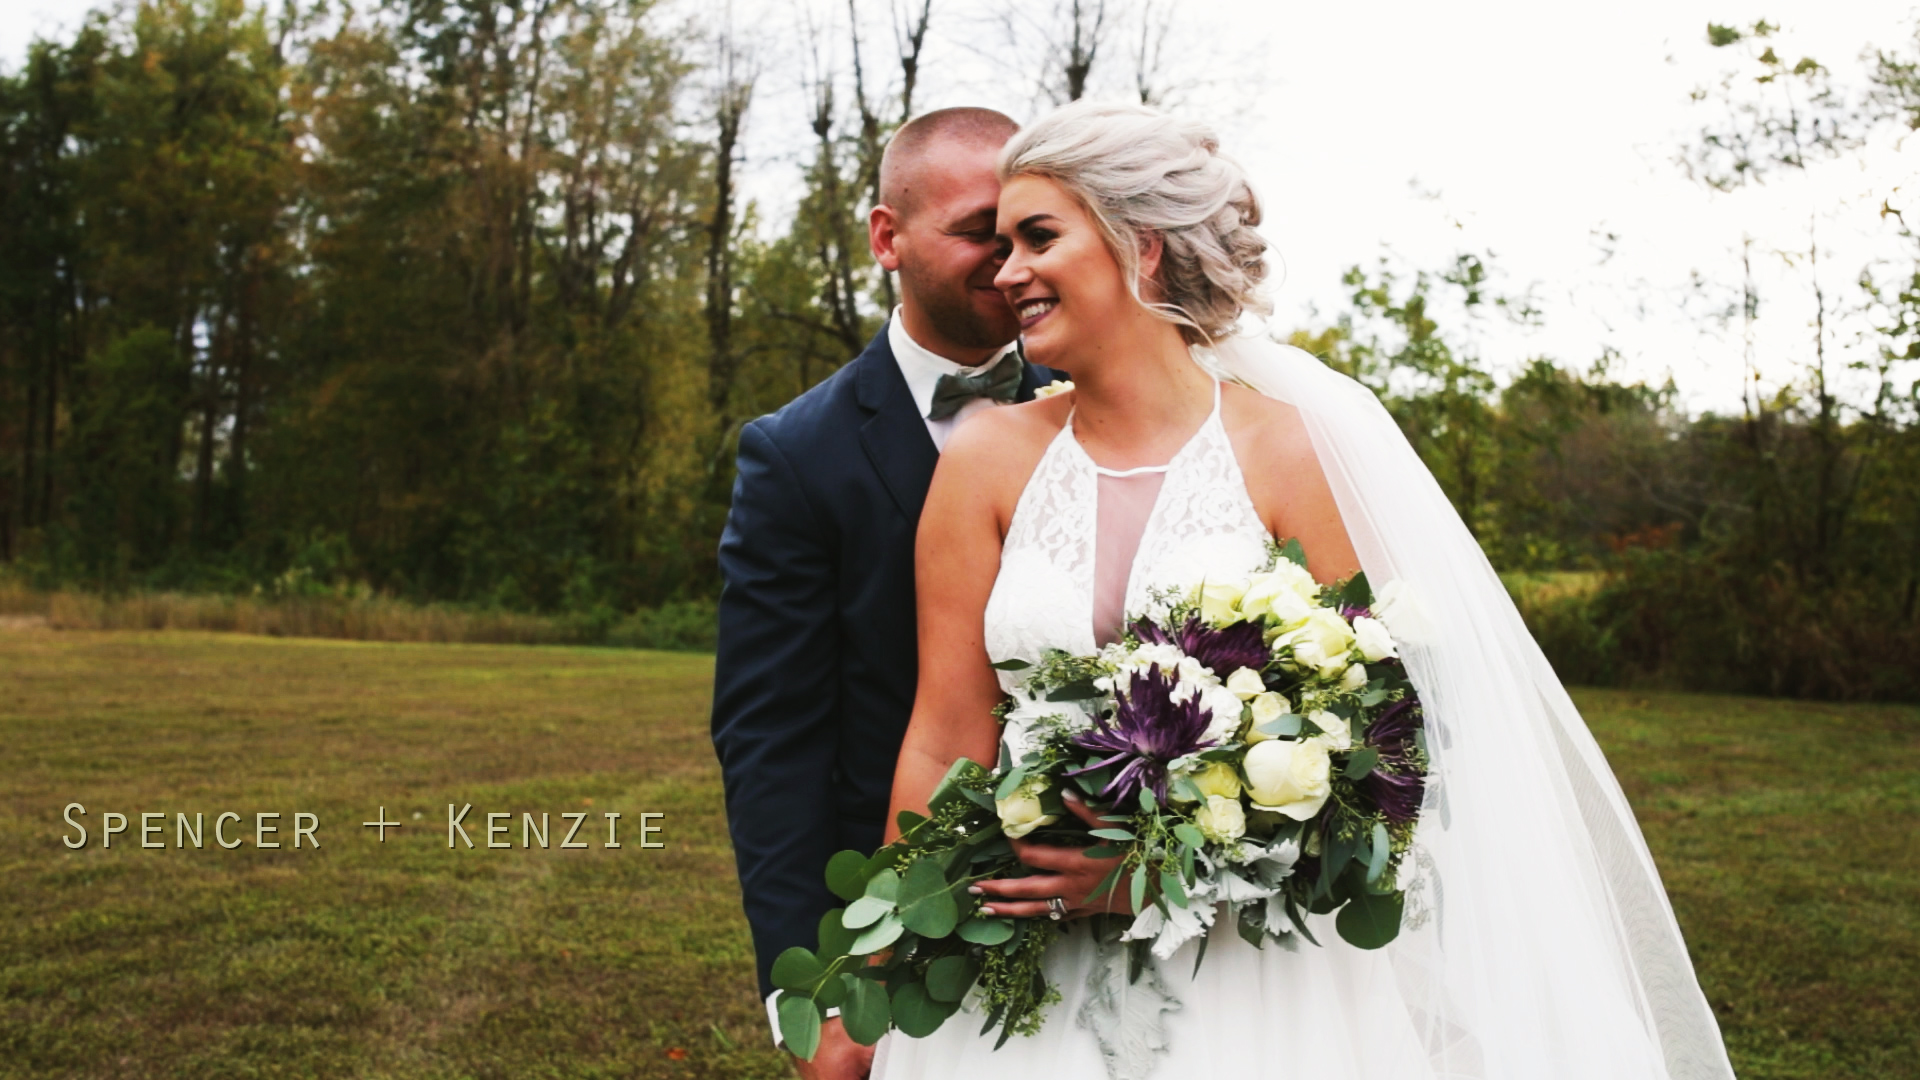 Spencer + Kenzie | Sonora, Kentucky | Thurman Landing